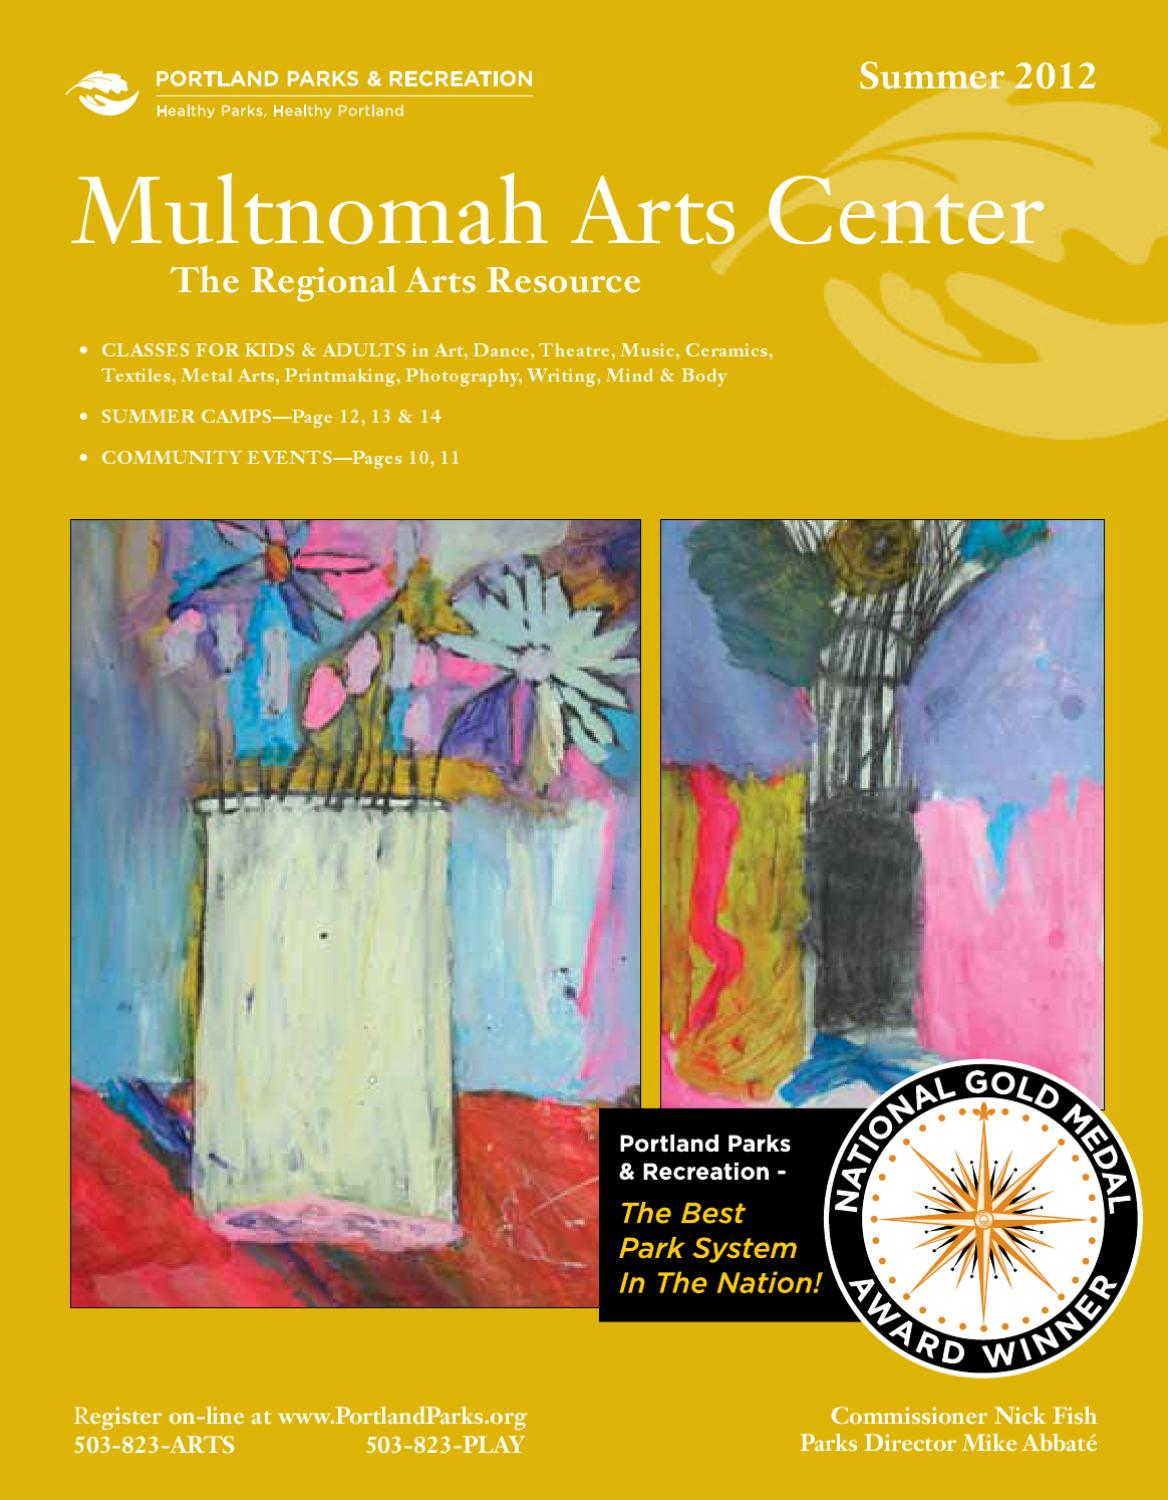 Multnomah Arts Center